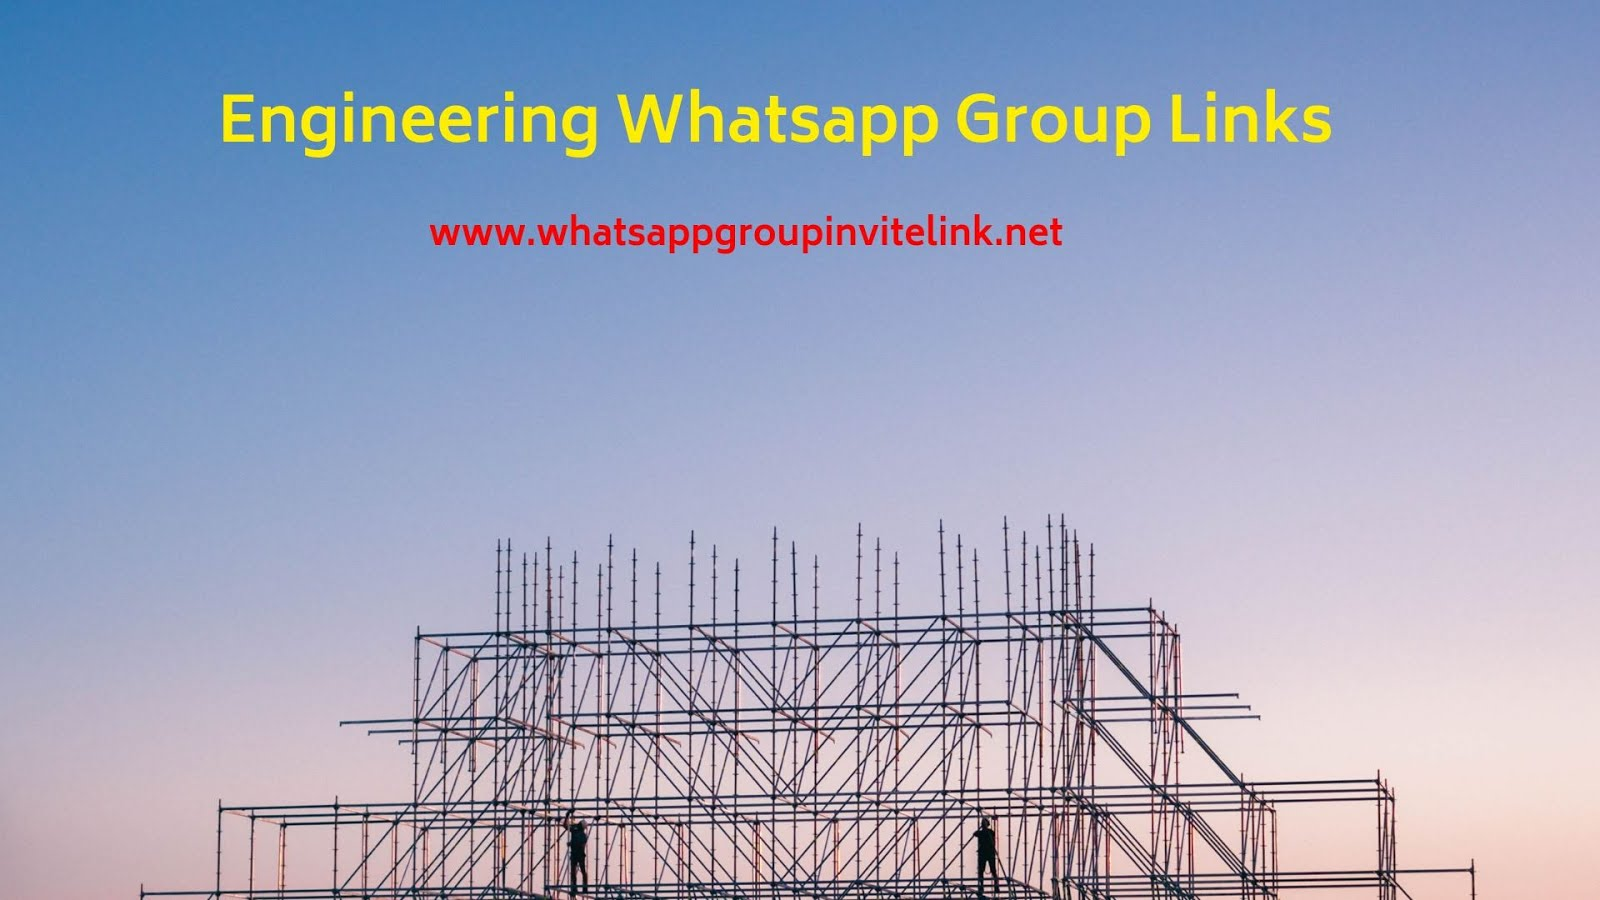 Whatsapp Group Invite Links: Engineering Whatsapp Group Links